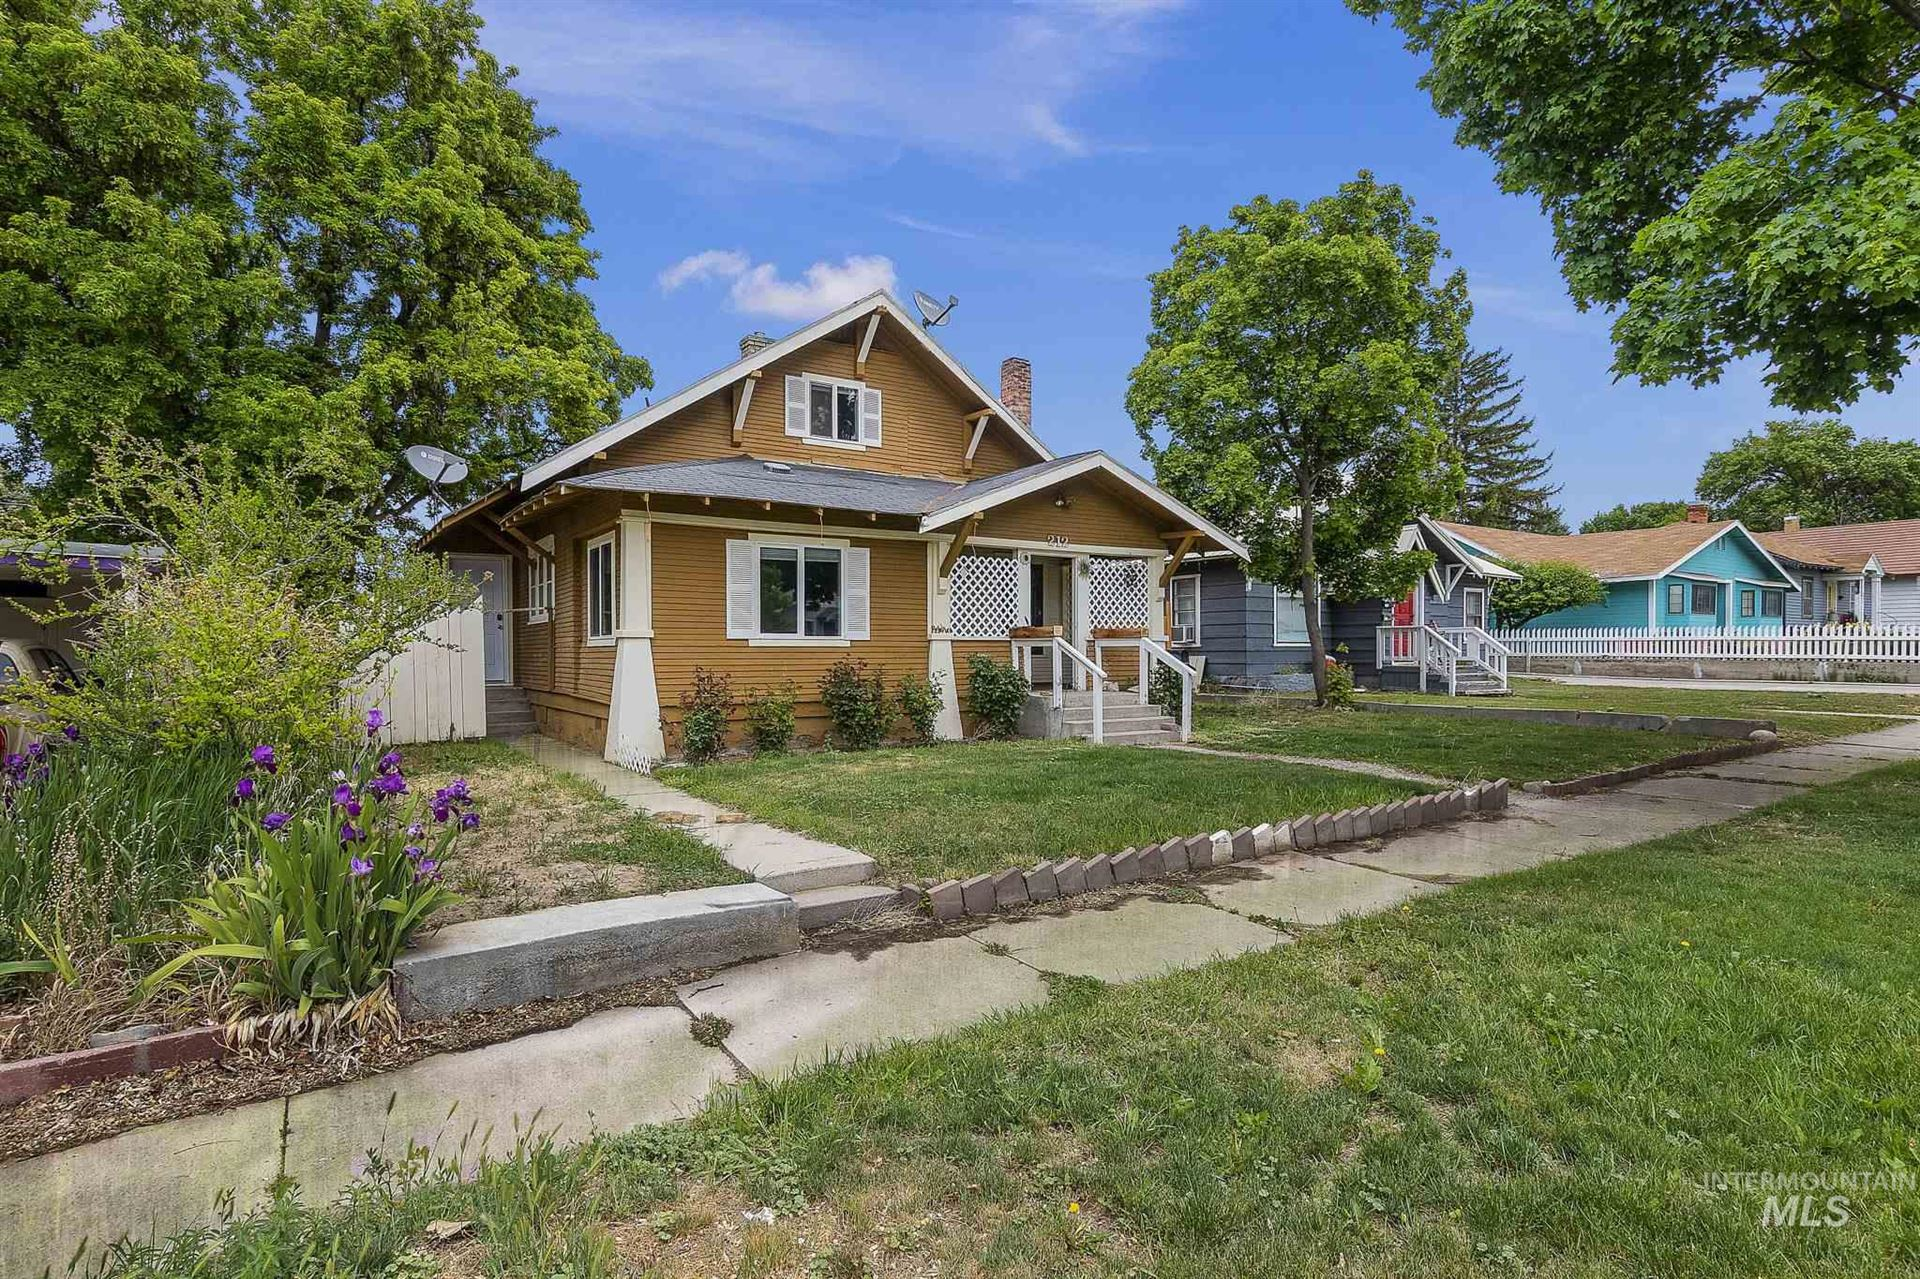 Photo of 212 East Ave C., Jerome, ID 83338 (MLS # 98767603)